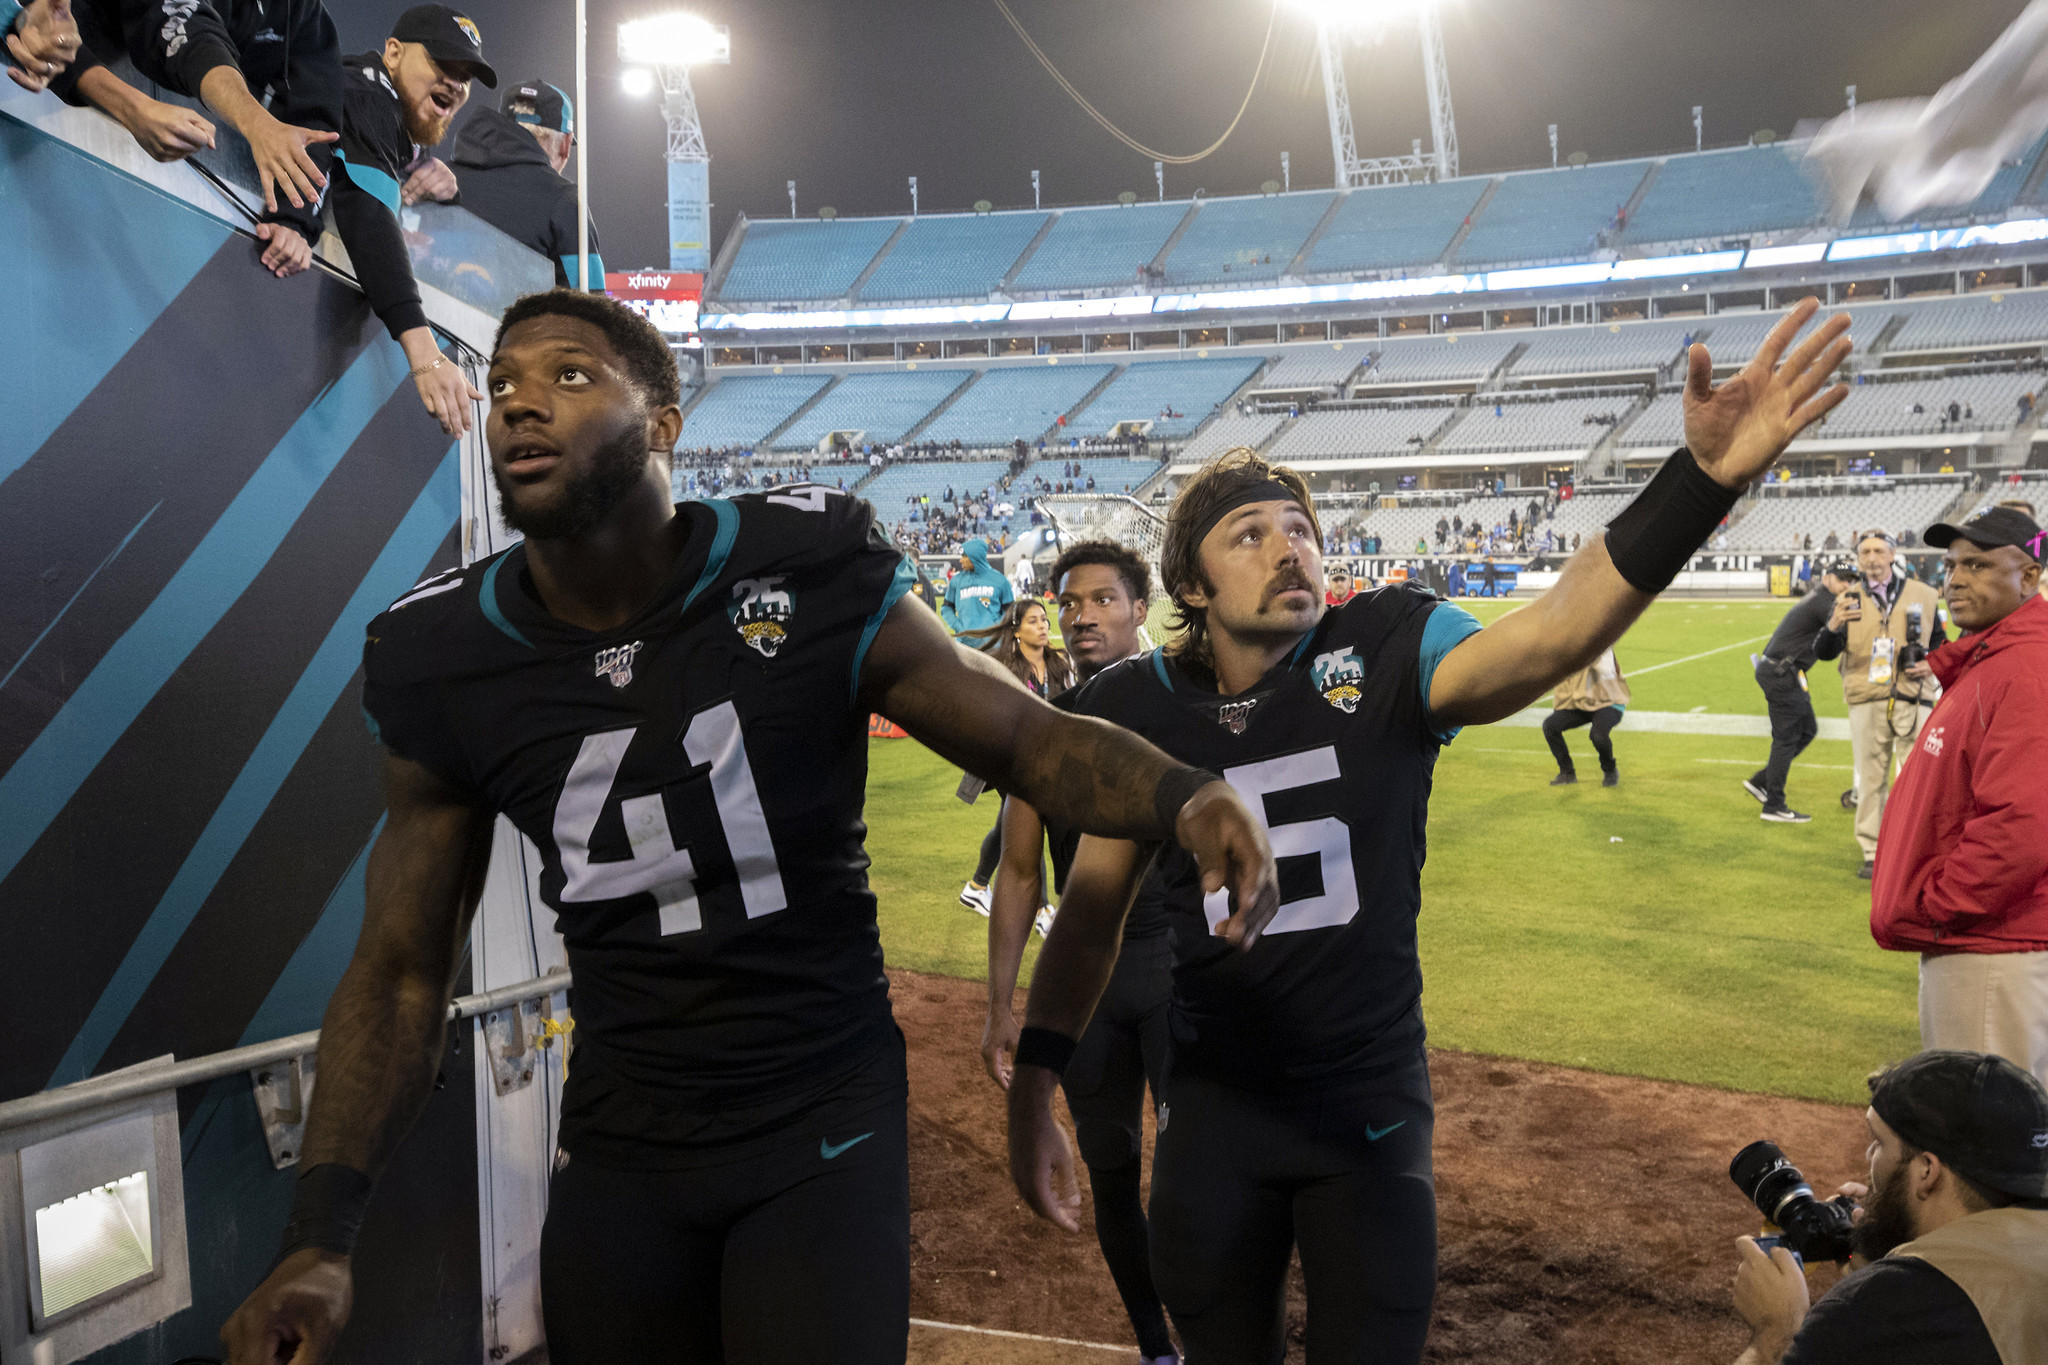 The Jaguars will always be the Jaguars